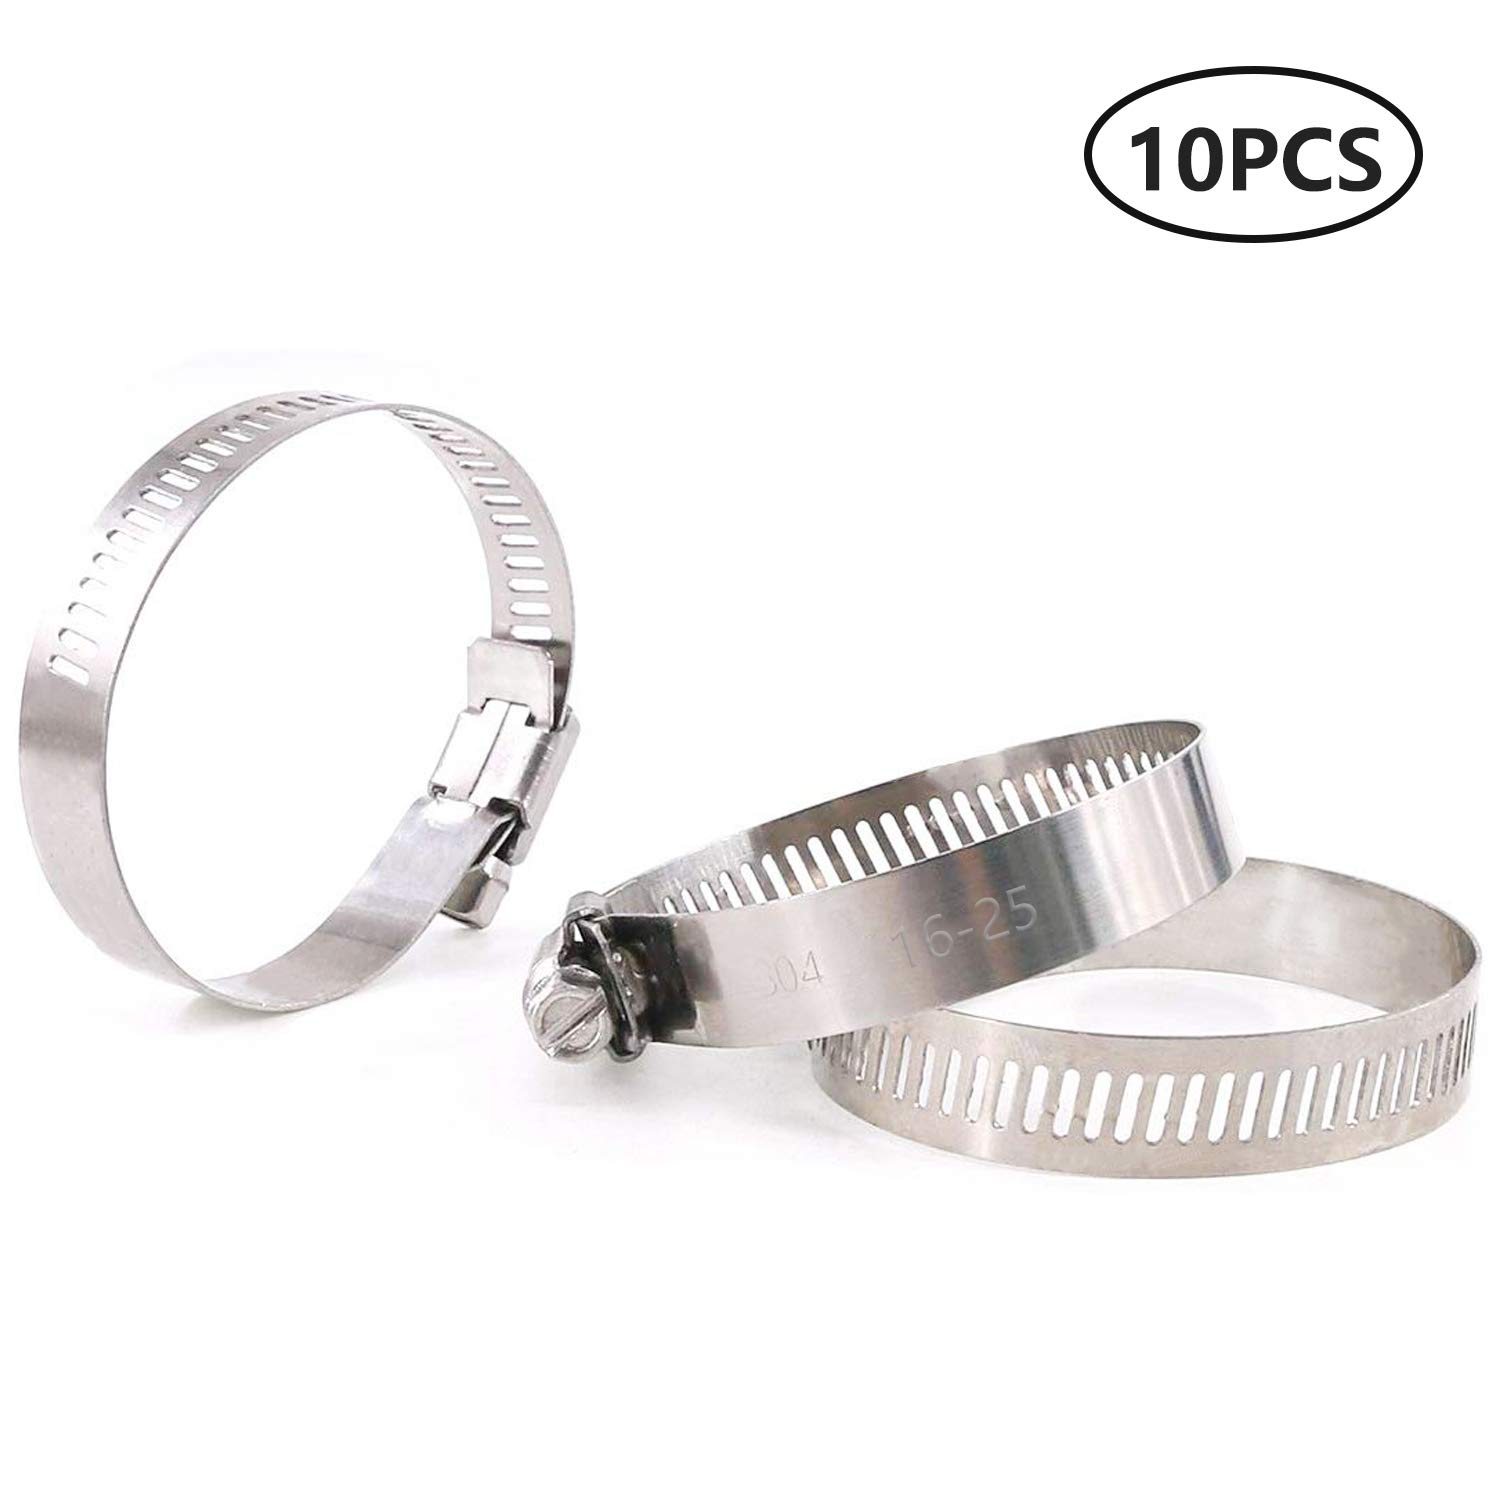 AIPRODA Micro Hose Clamp Adjustable 304 Stainless Steel Duct Clamps,Worm Gear Adjustable Hose Clamp 5//8inches Pack of 10